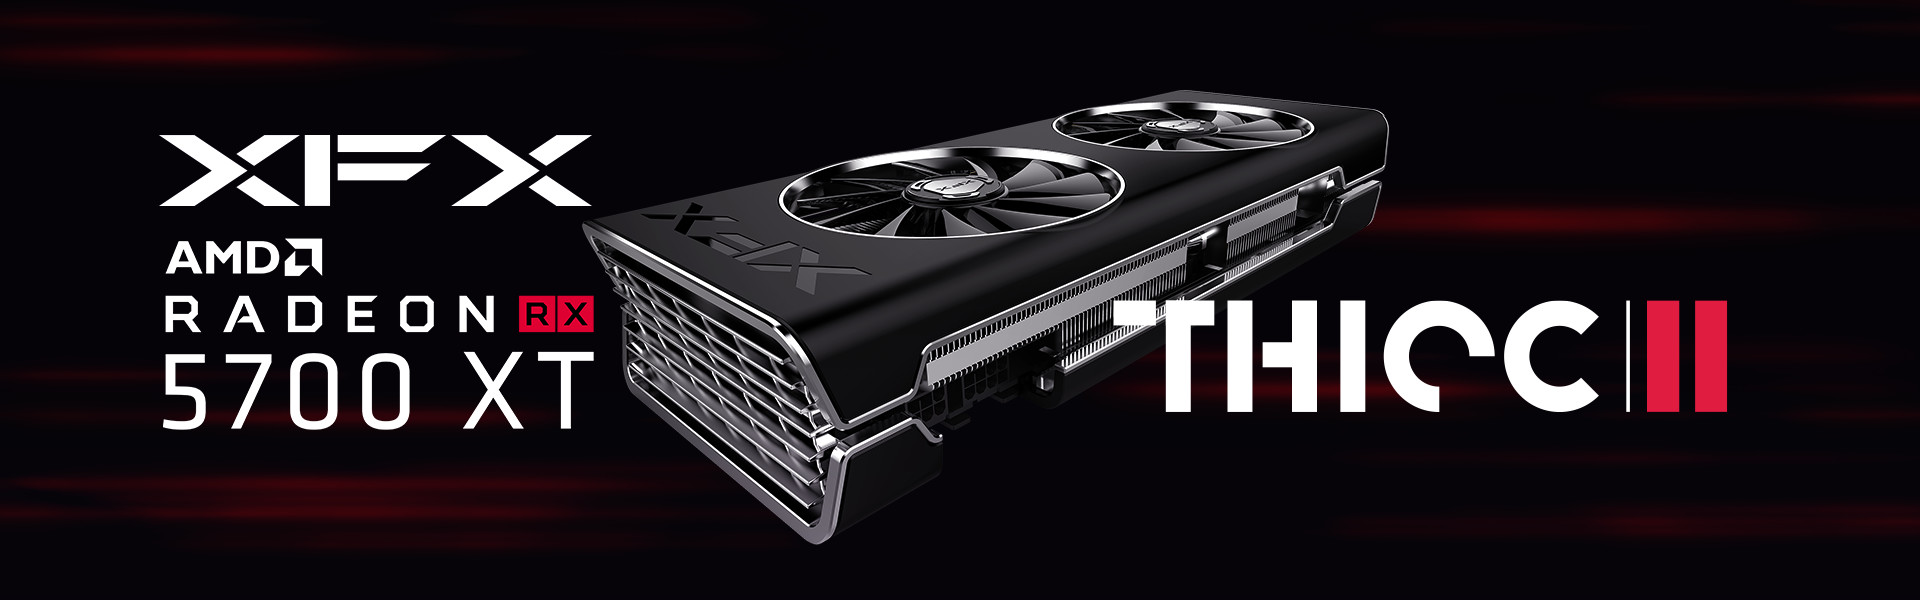 Xfx Intros Their Top Of The Line Radeon Rx 5700 Xt Thicc Ii Card